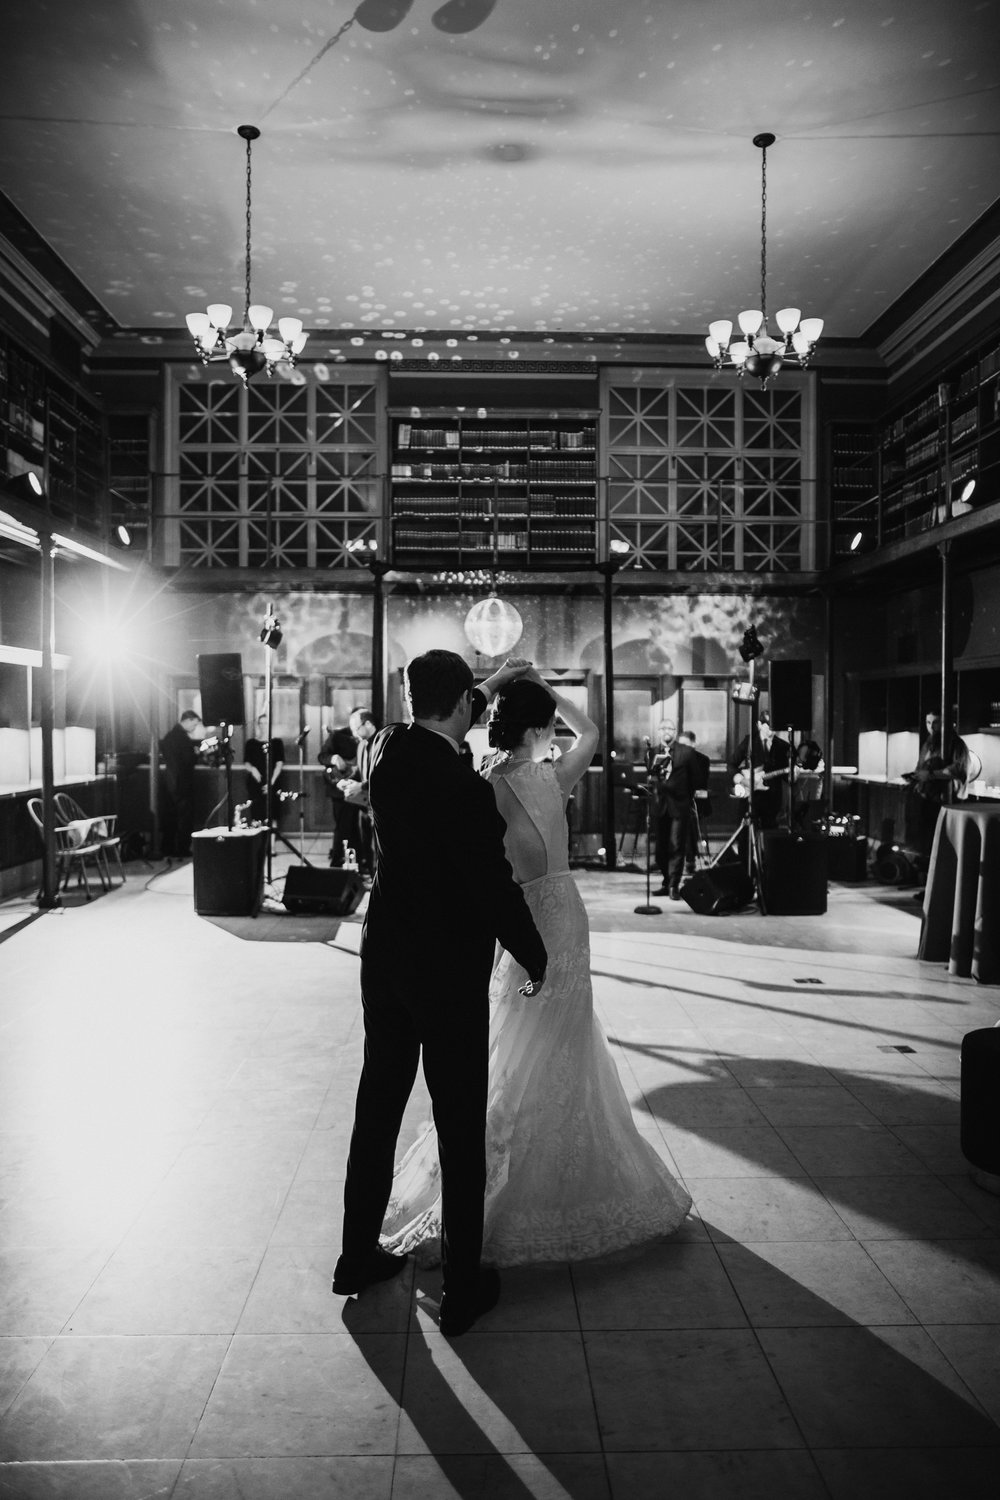 Boston-Public-Library-Wedding-155.jpg